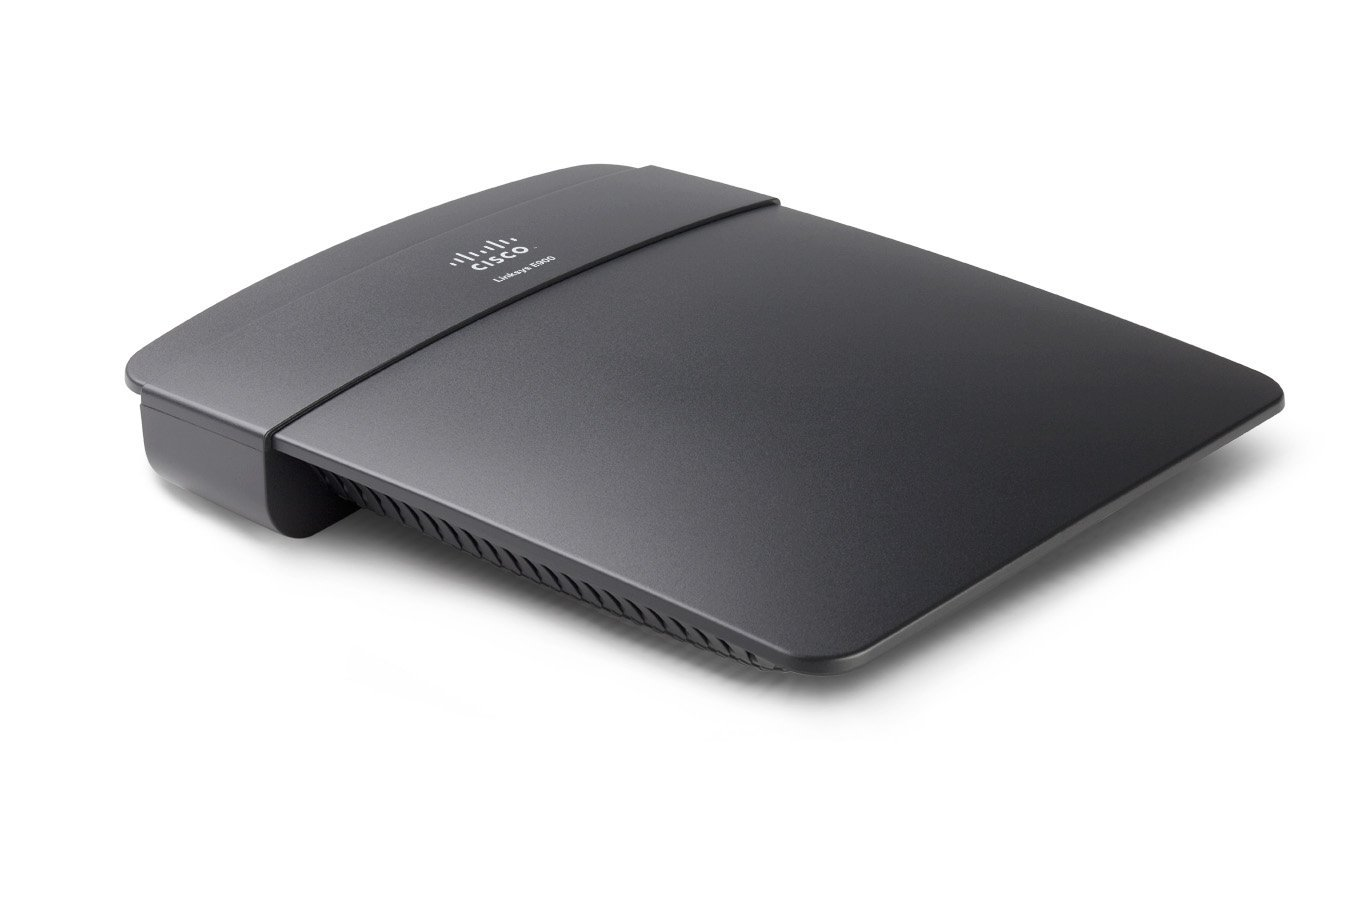 How to setup Cisco Linksys N300 E1200 Wifi Router using ...